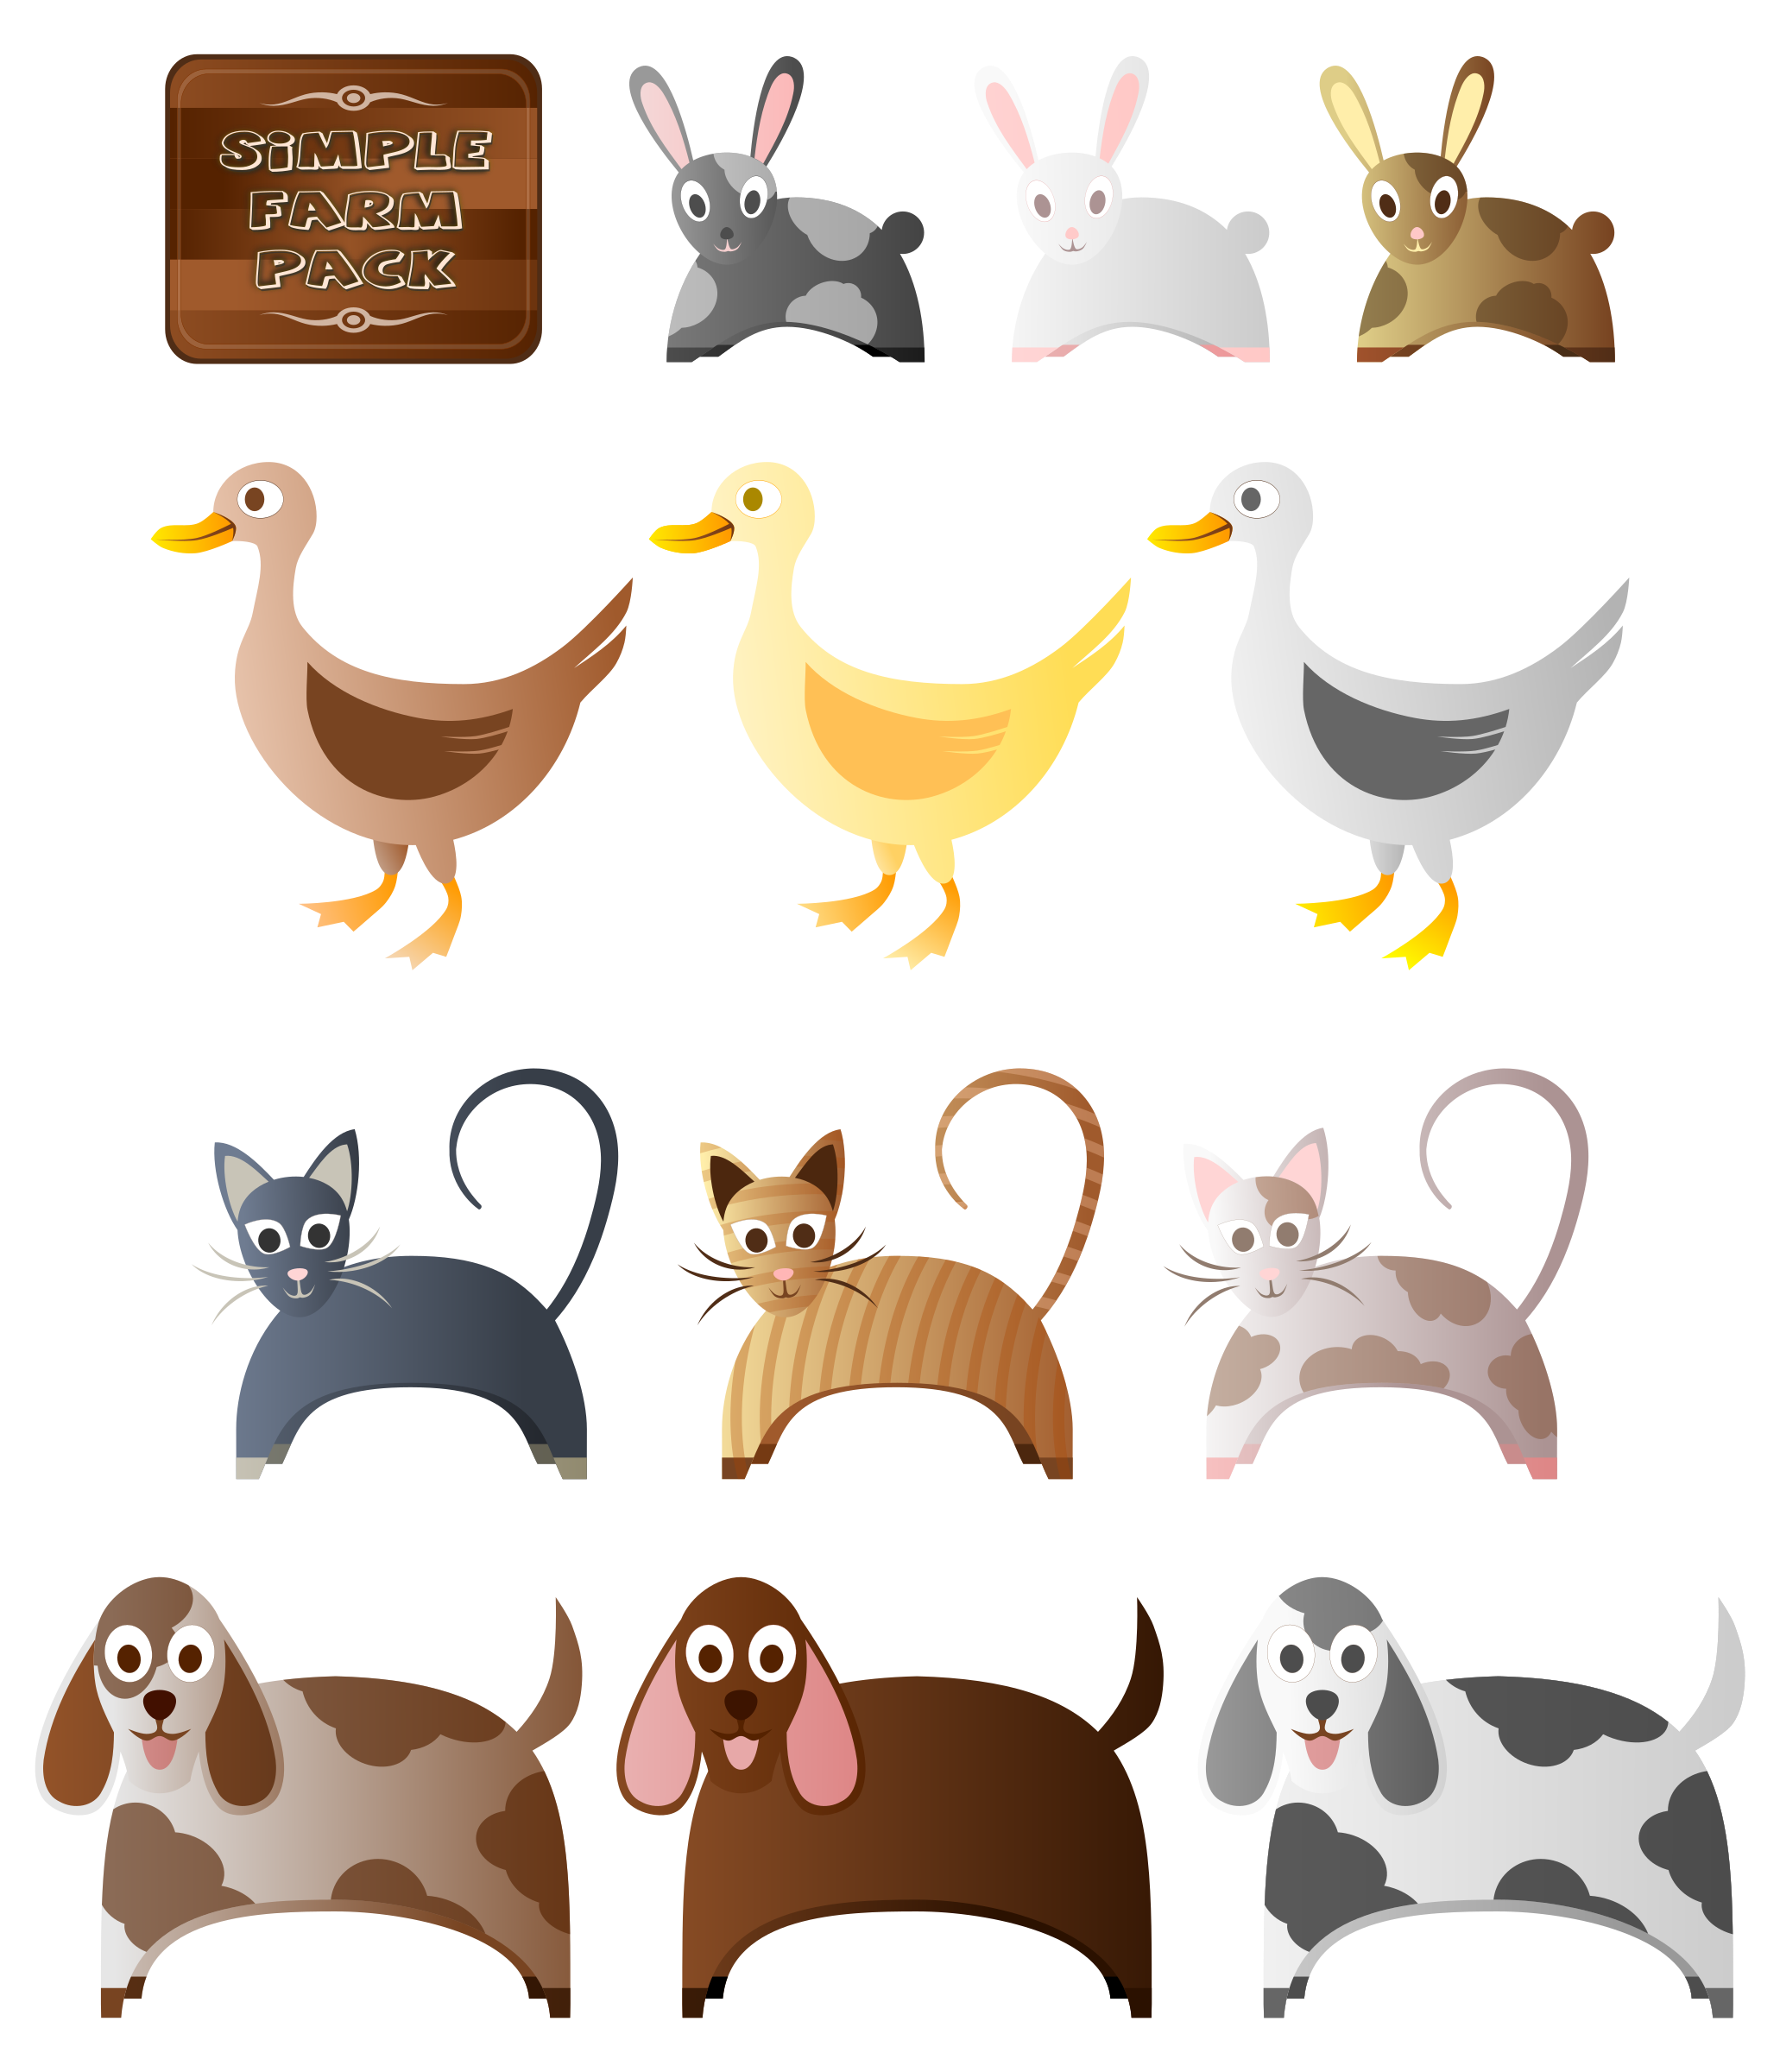 Animal farm book images clipart clip freeuse download Clipart - Simple Farm Animals 2 clip freeuse download